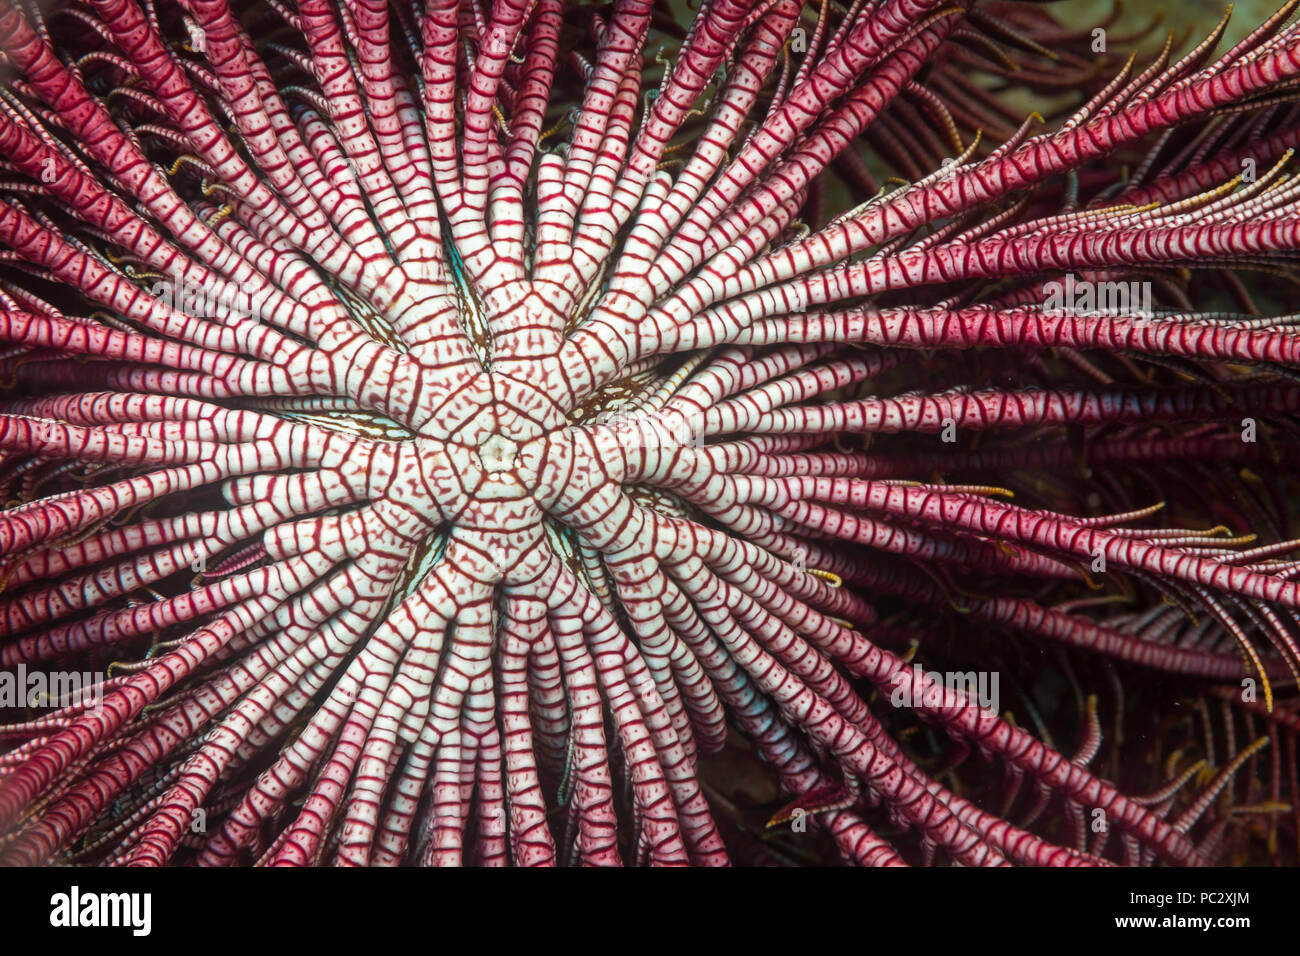 Detail of the center branching arms of a crinoid or feather star, Lamprometra klunzingeri, open and feeding on plankton at night. - Stock Image